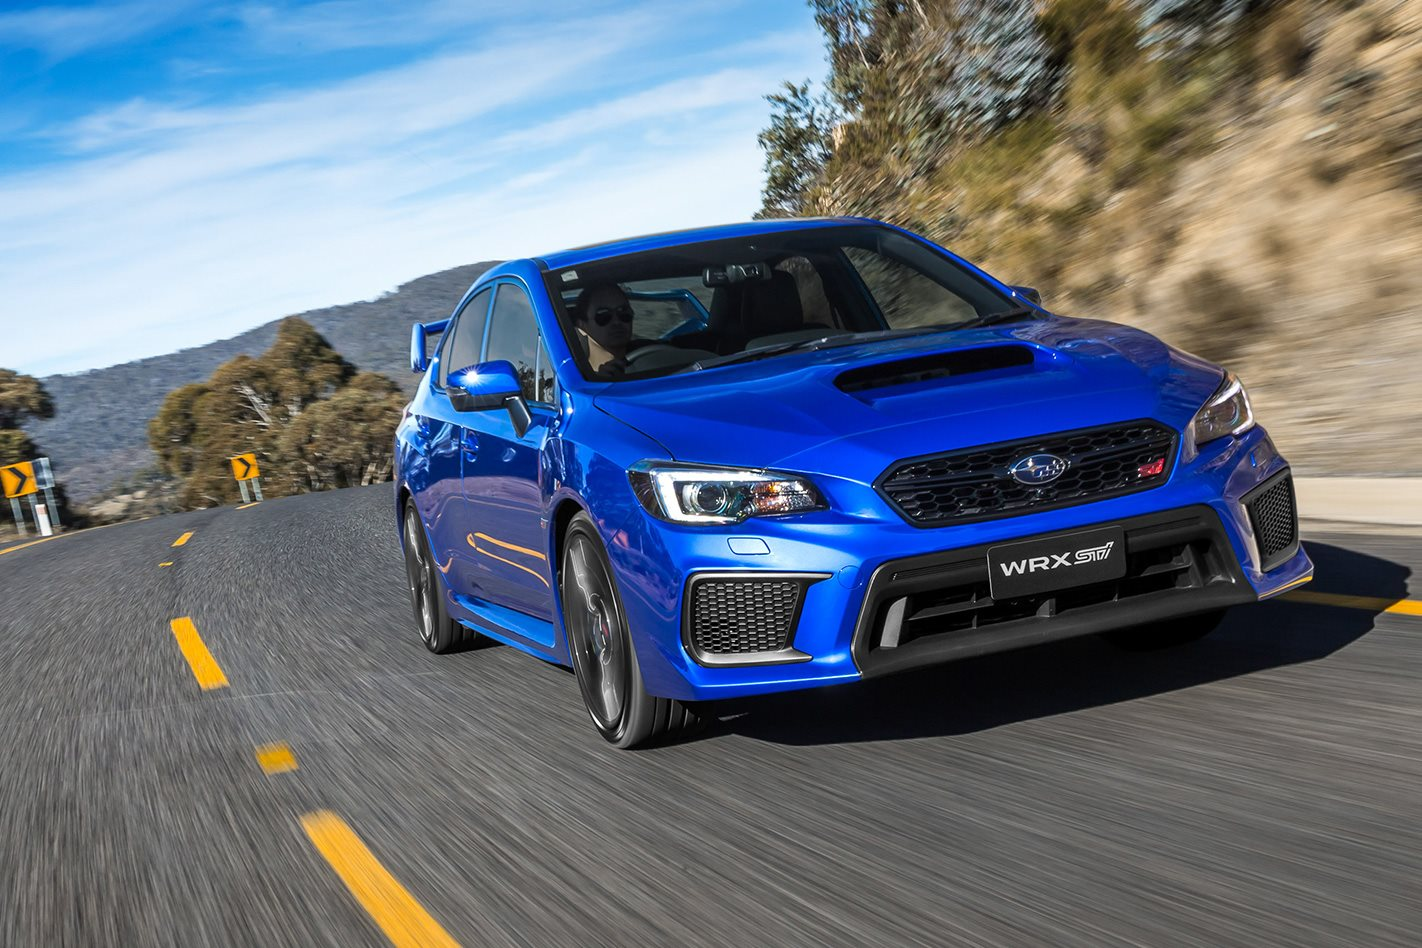 2018 Subaru Wrx And Sti Pricing Performance Gains Announced Blue With White Rims